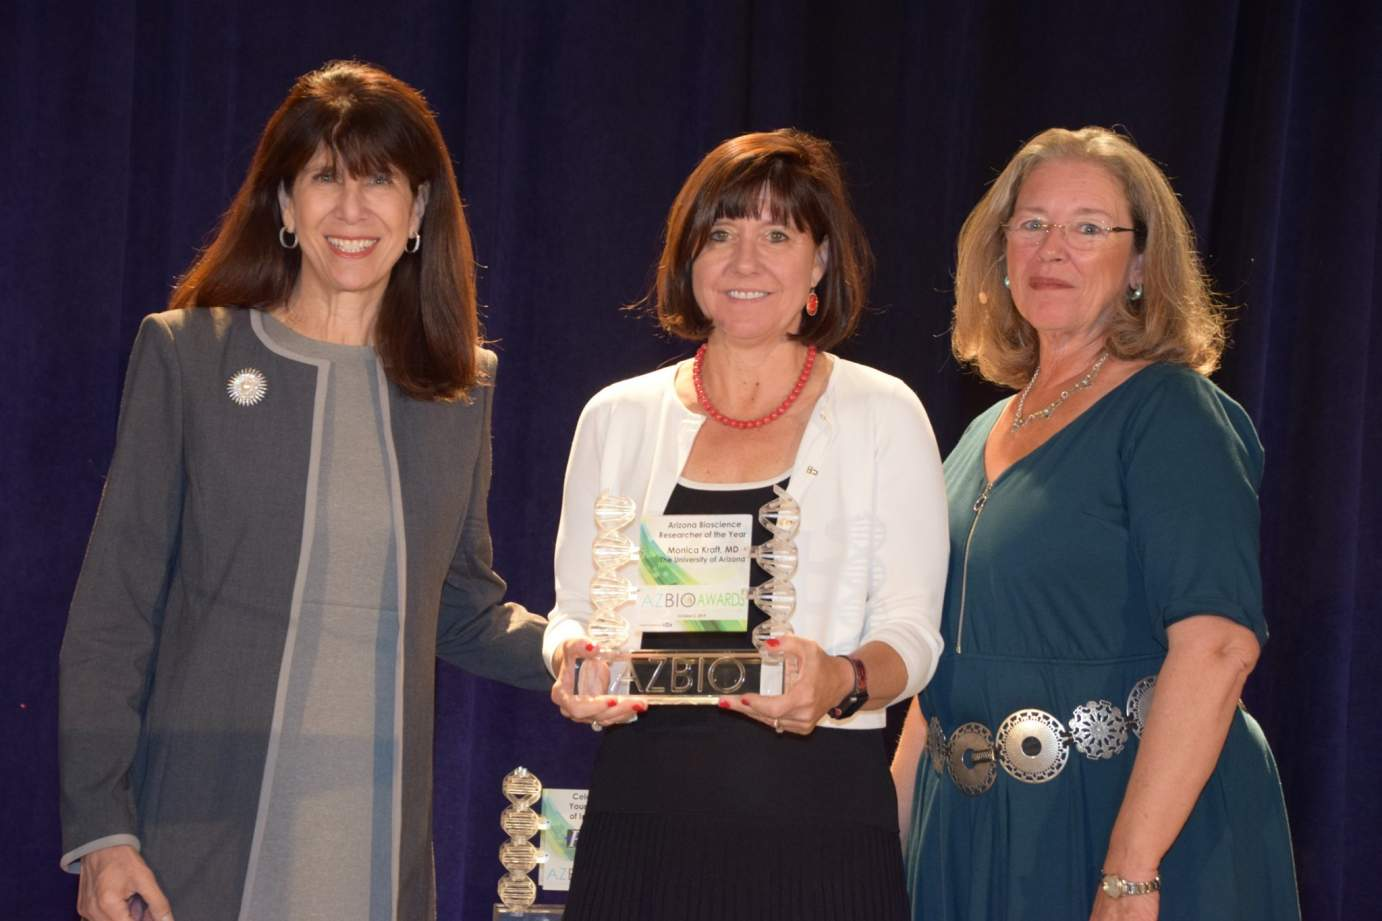 Mara Aspinall, managing director of BlueStone Venture Partners, Dr. Monica Kraft and Joan Koerber-Walker, AZBio president and CEO, as Dr. Kraft is presented with Arizona Biosciences Researcher of the Year honors for 2019